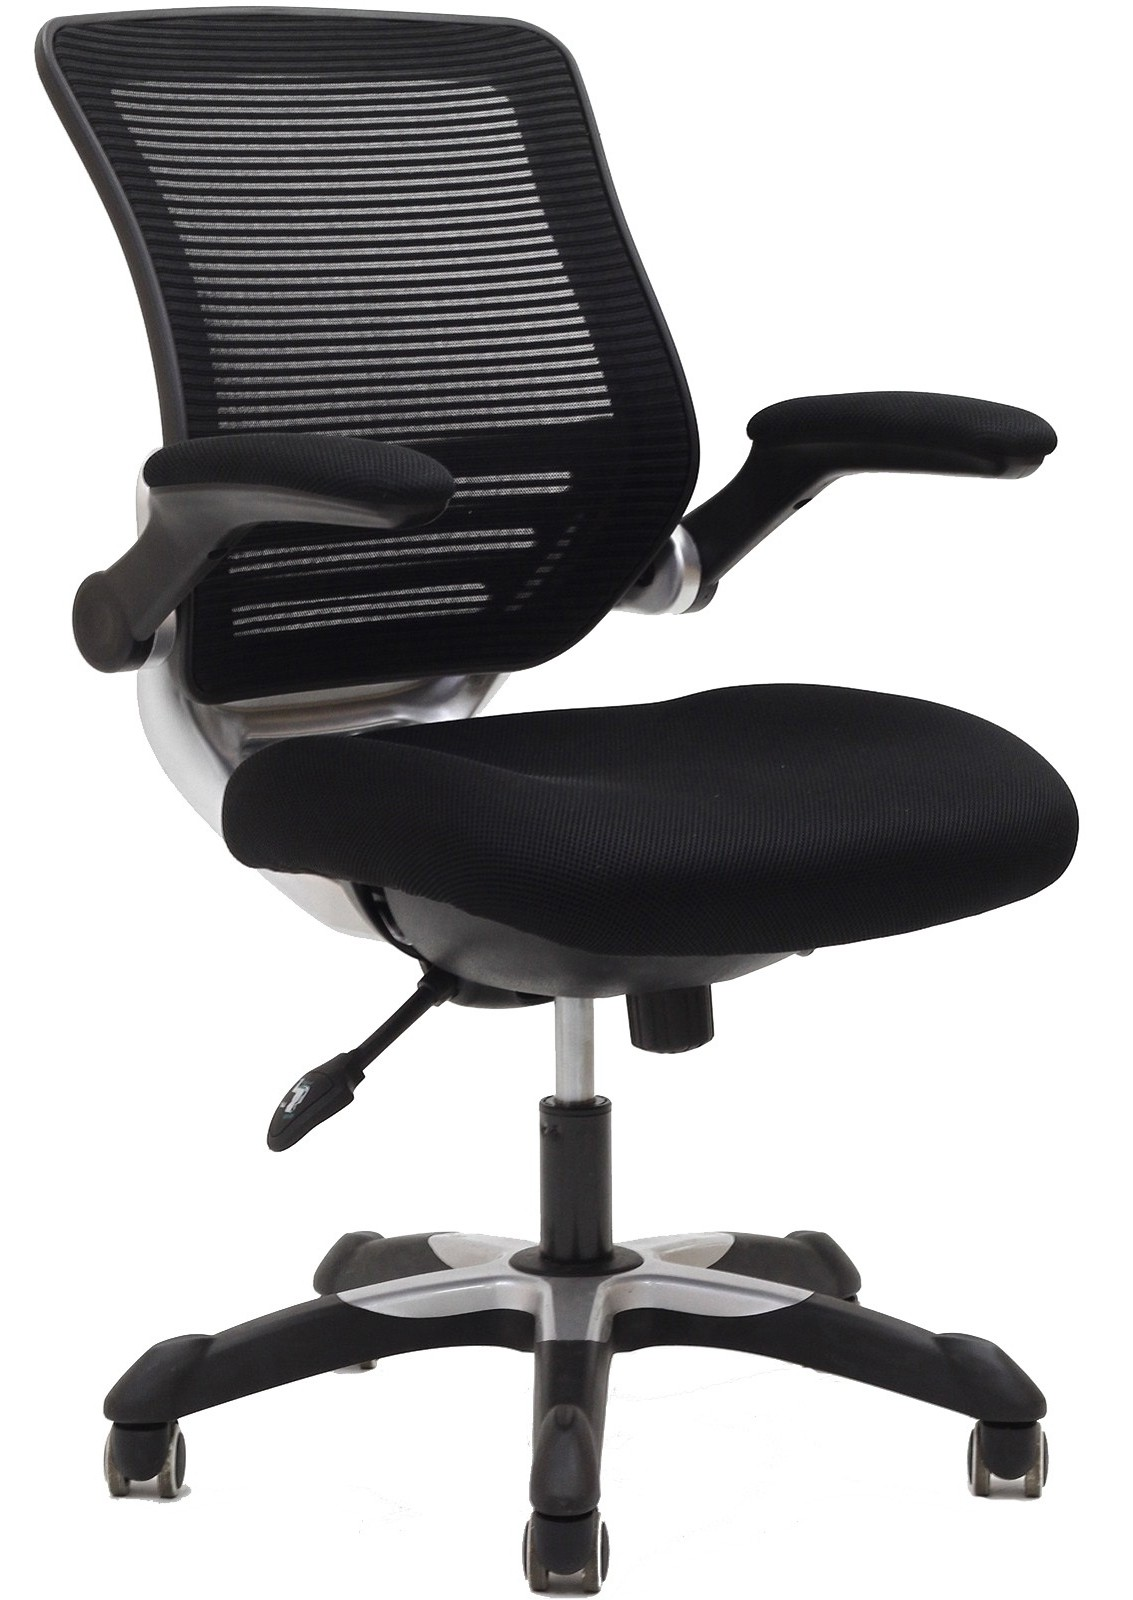 edge office chair with black mesh fabric seat from renegade eei 594